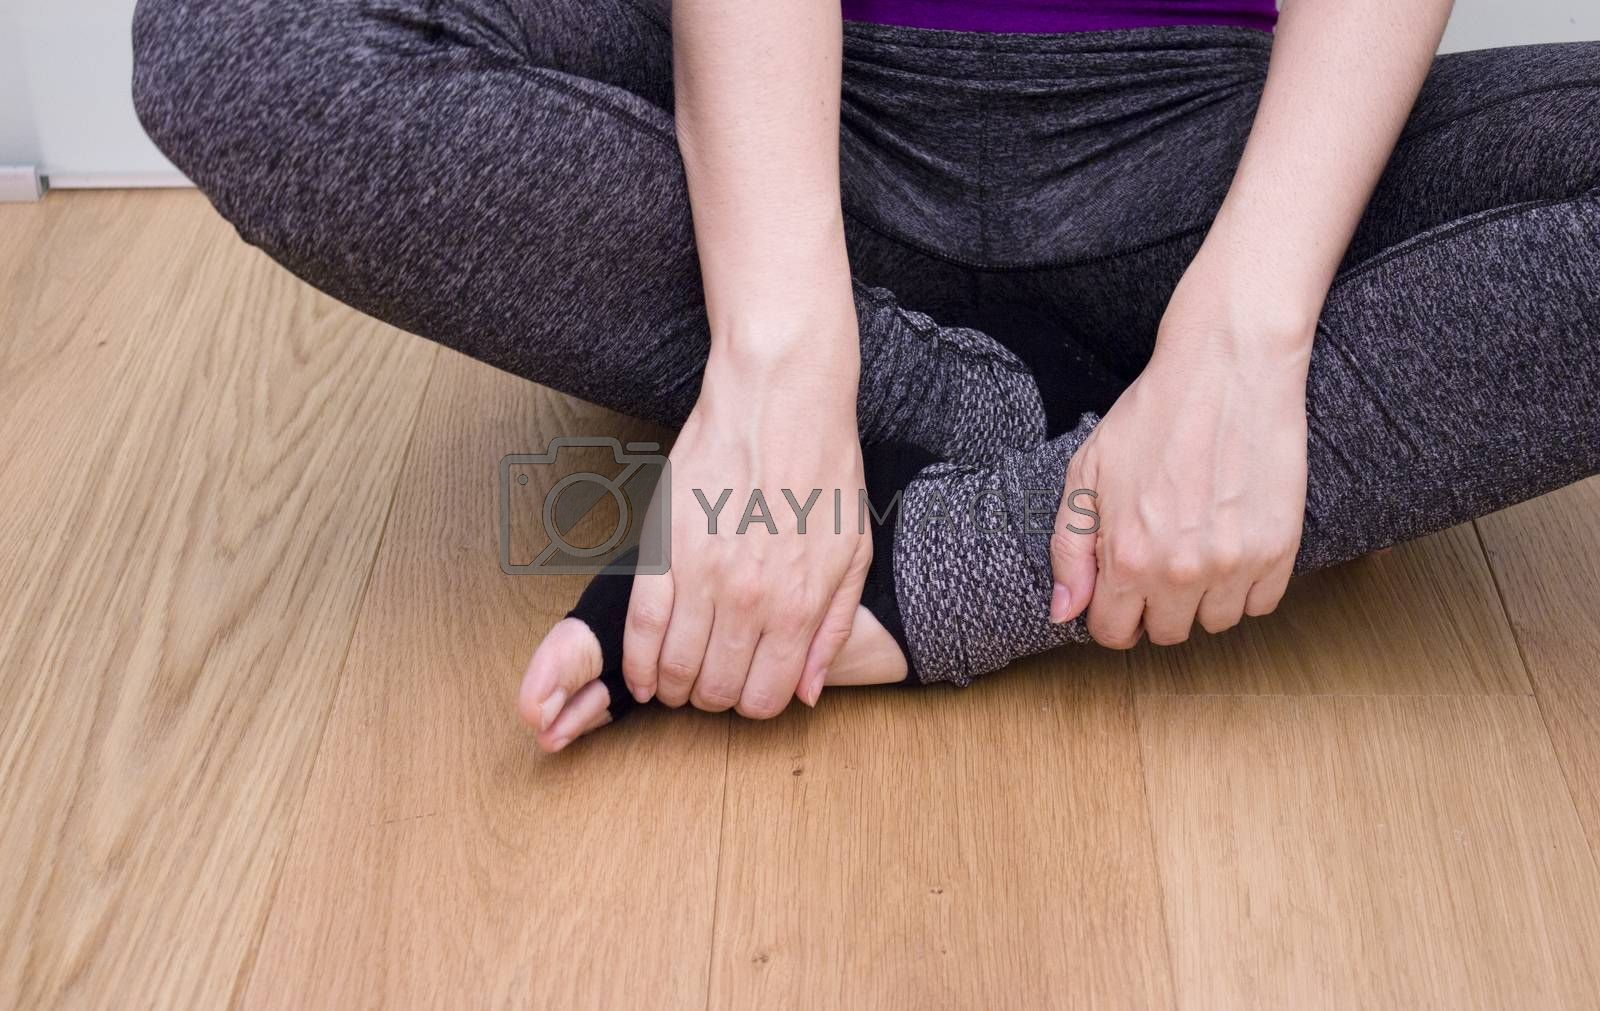 Womans hands practicing yoga and meditation positions.Mudras.